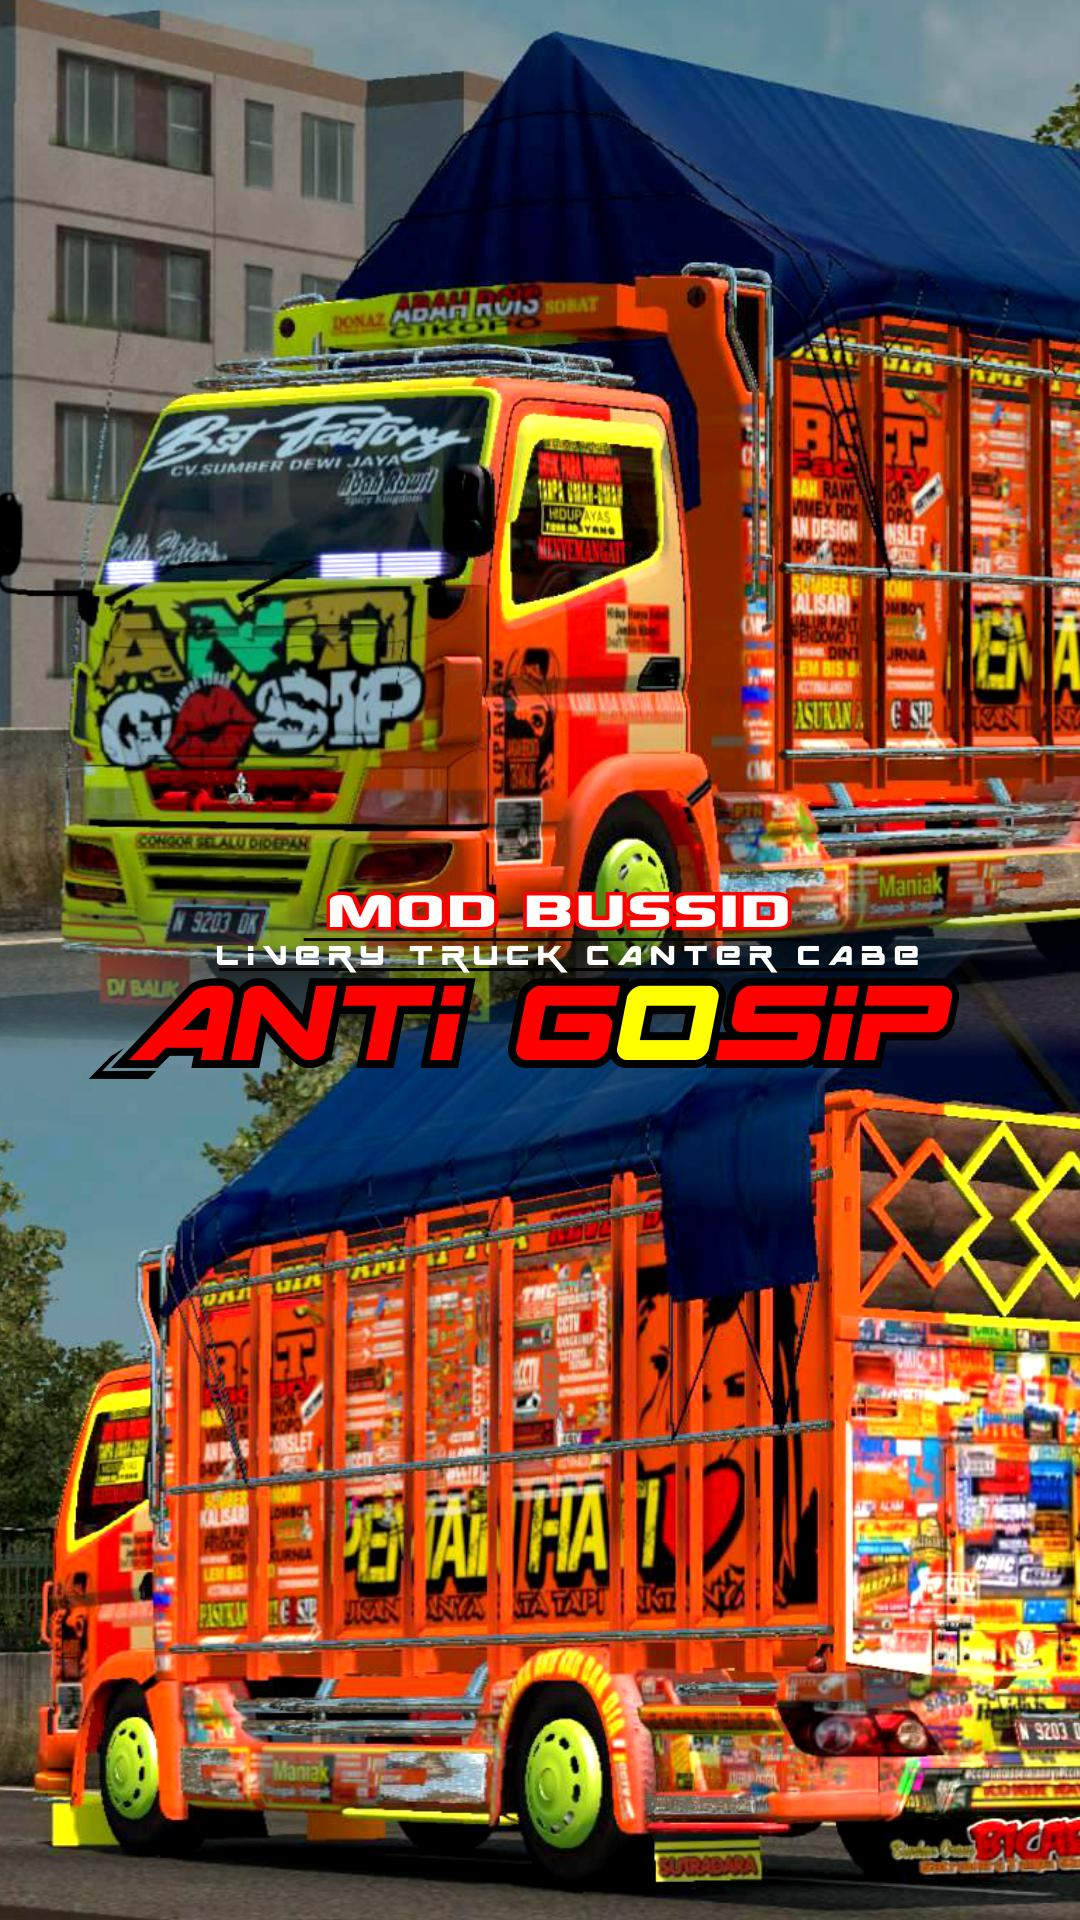 Mod Bussid Livery Truk Canter Cabe Anti Gosip For Android Apk Download